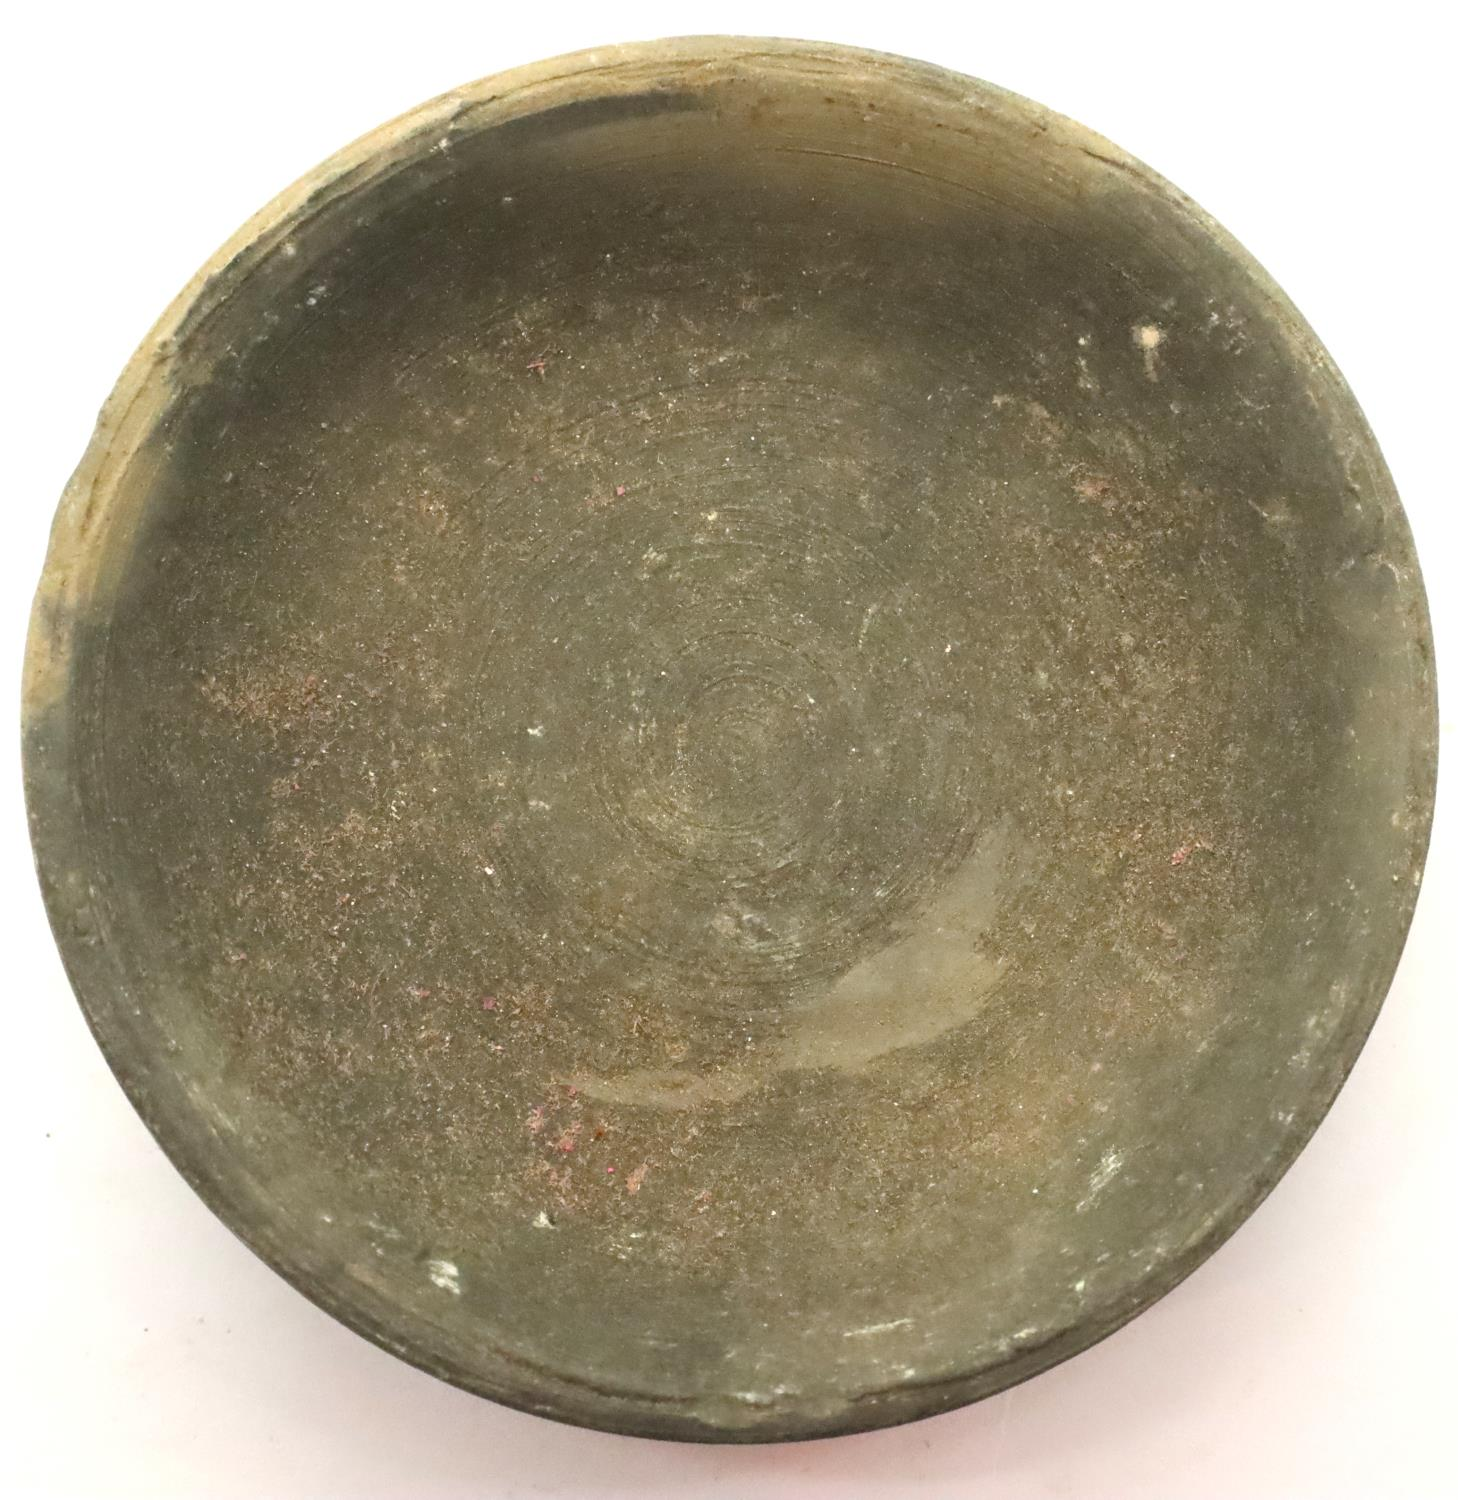 Chinese Song Dynasty blackened clay shallow bowl, D: 82 mm. P&P Group 2 (£18+VAT for the first lot